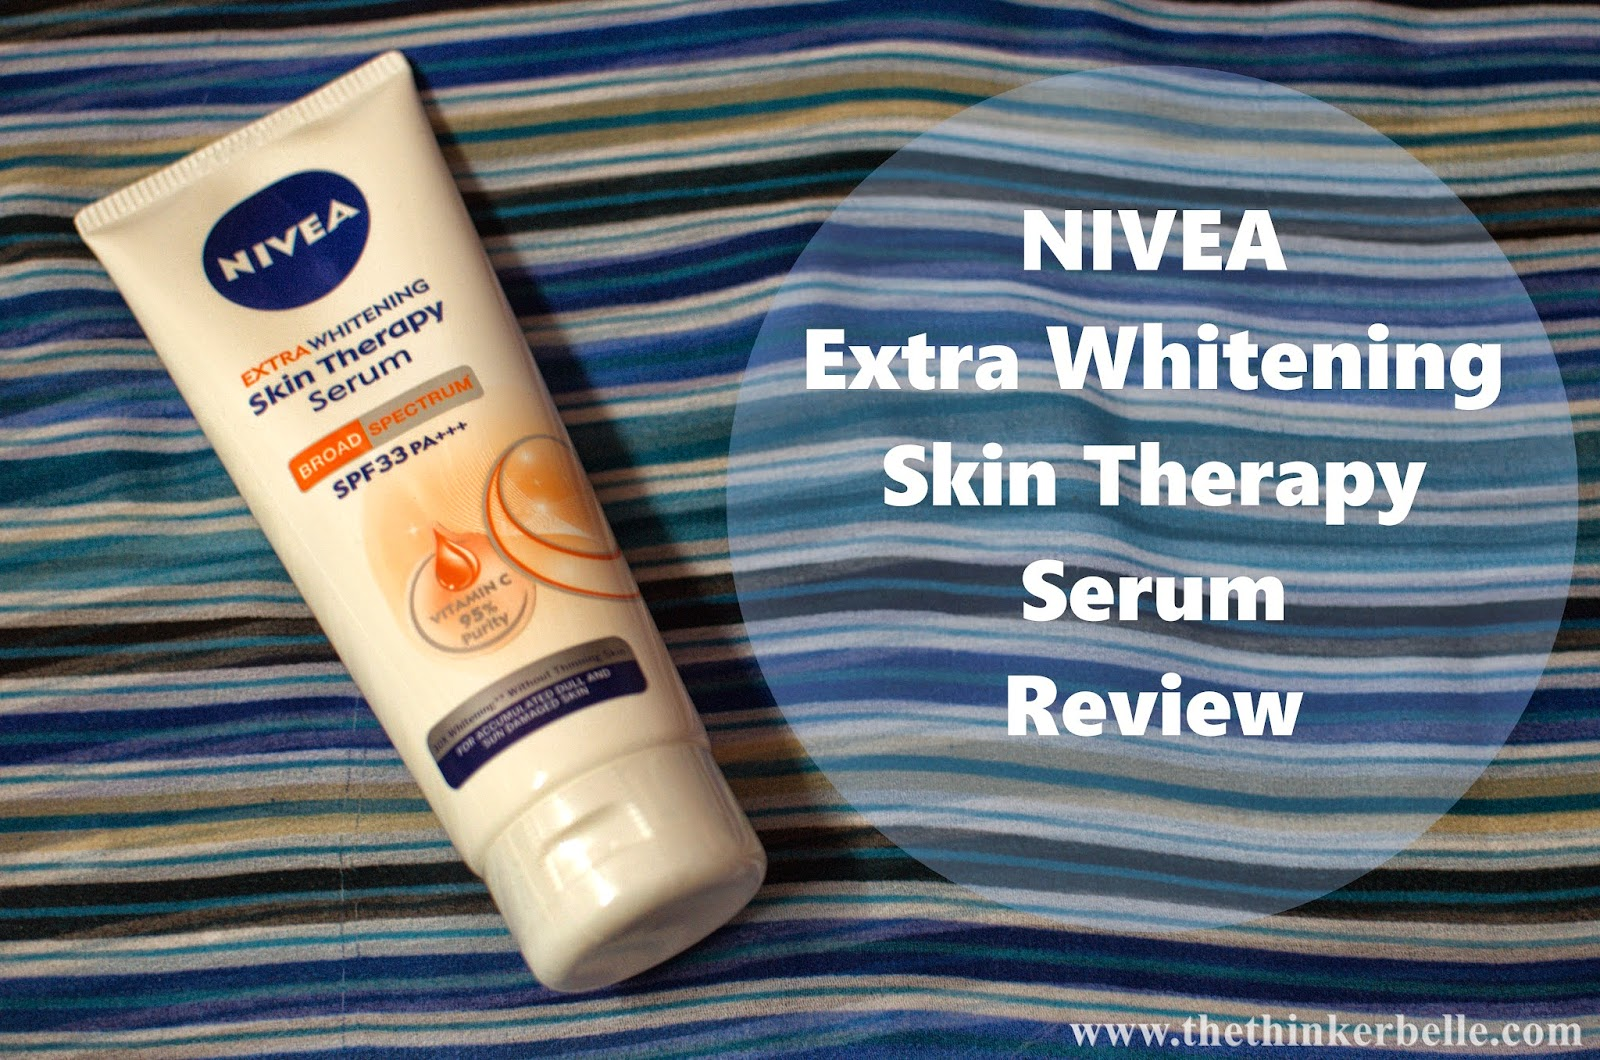 Nivea Extra Whitening Skin Therapy Serum Get Fairer In 14 Days Sun Lotion Giveawayclosed